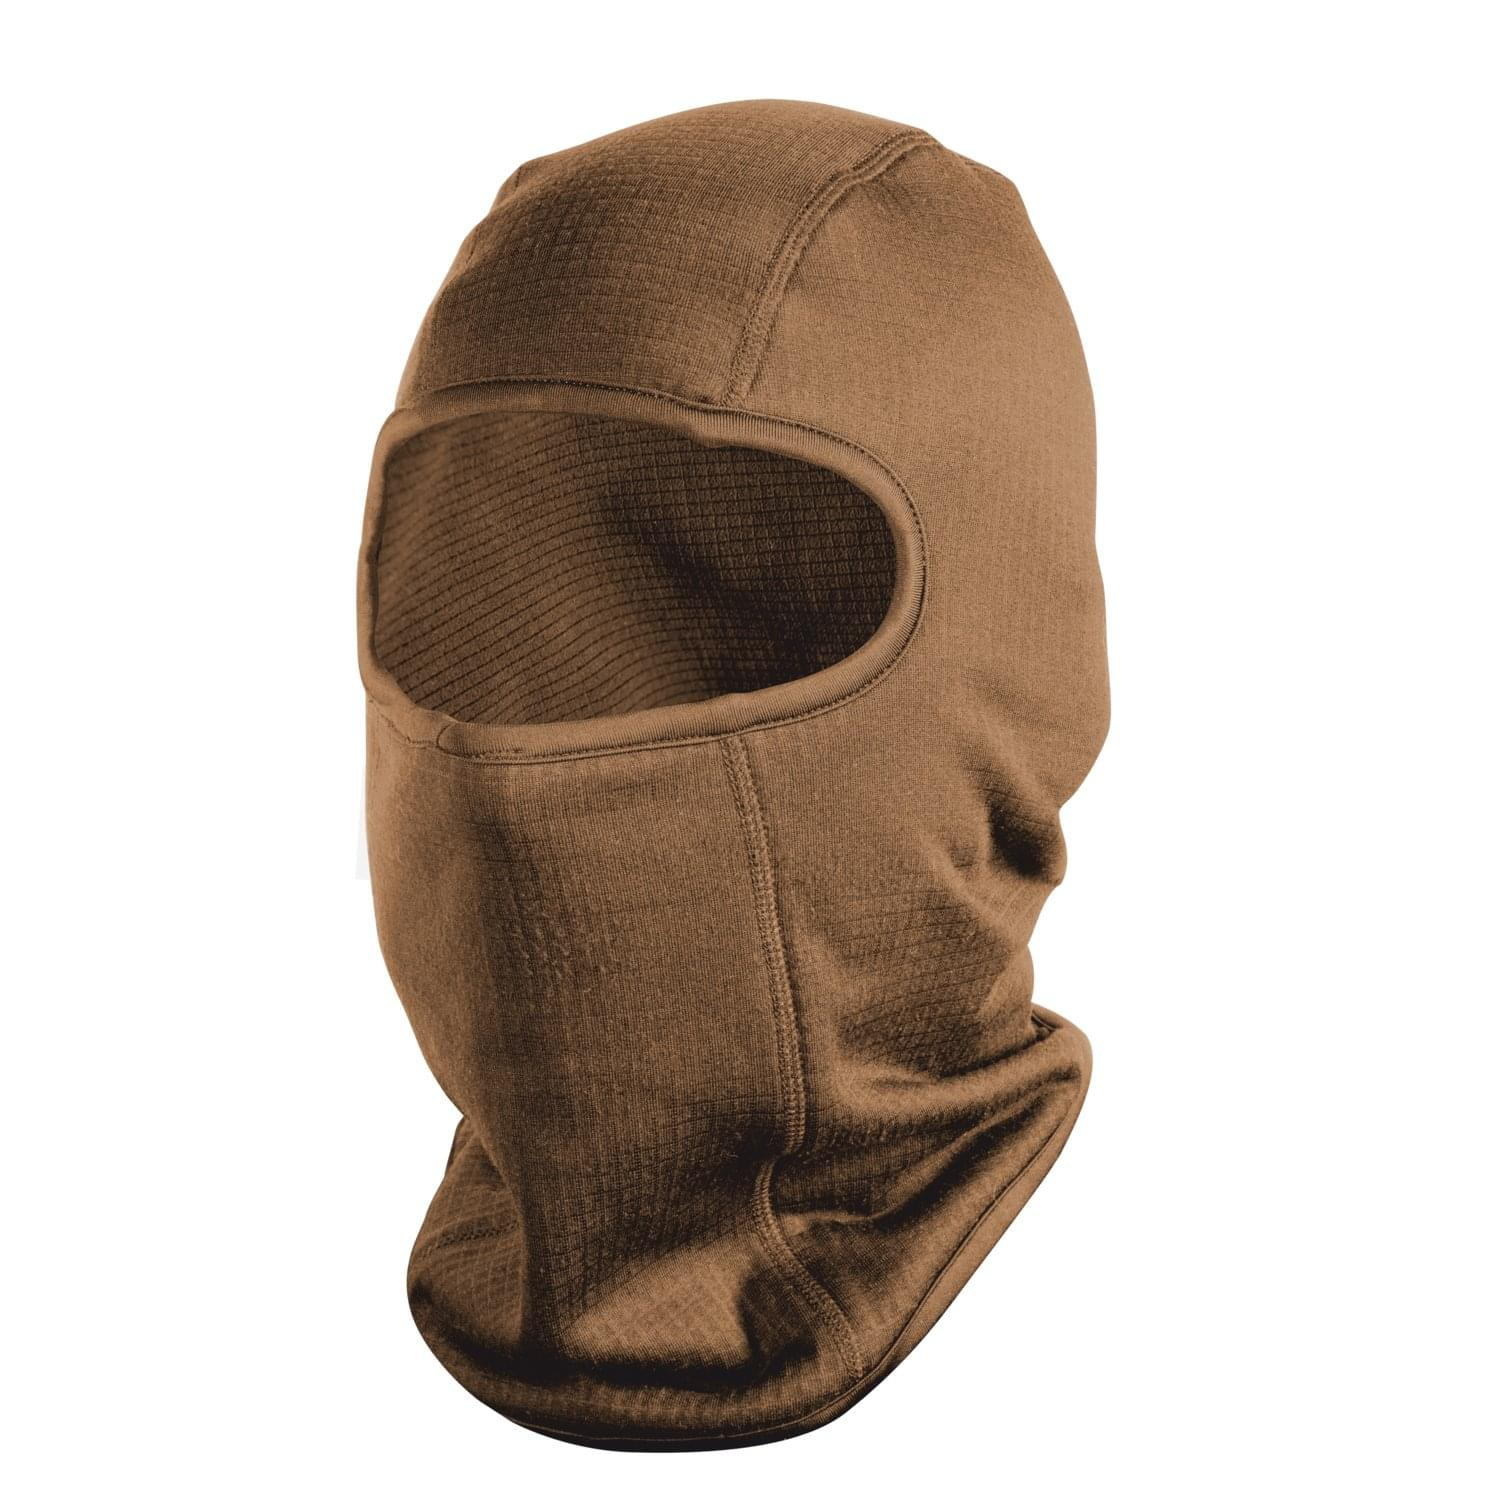 EXTREME COLD WEATHER BALACLAVA - COMFORTDRY® - Coyote